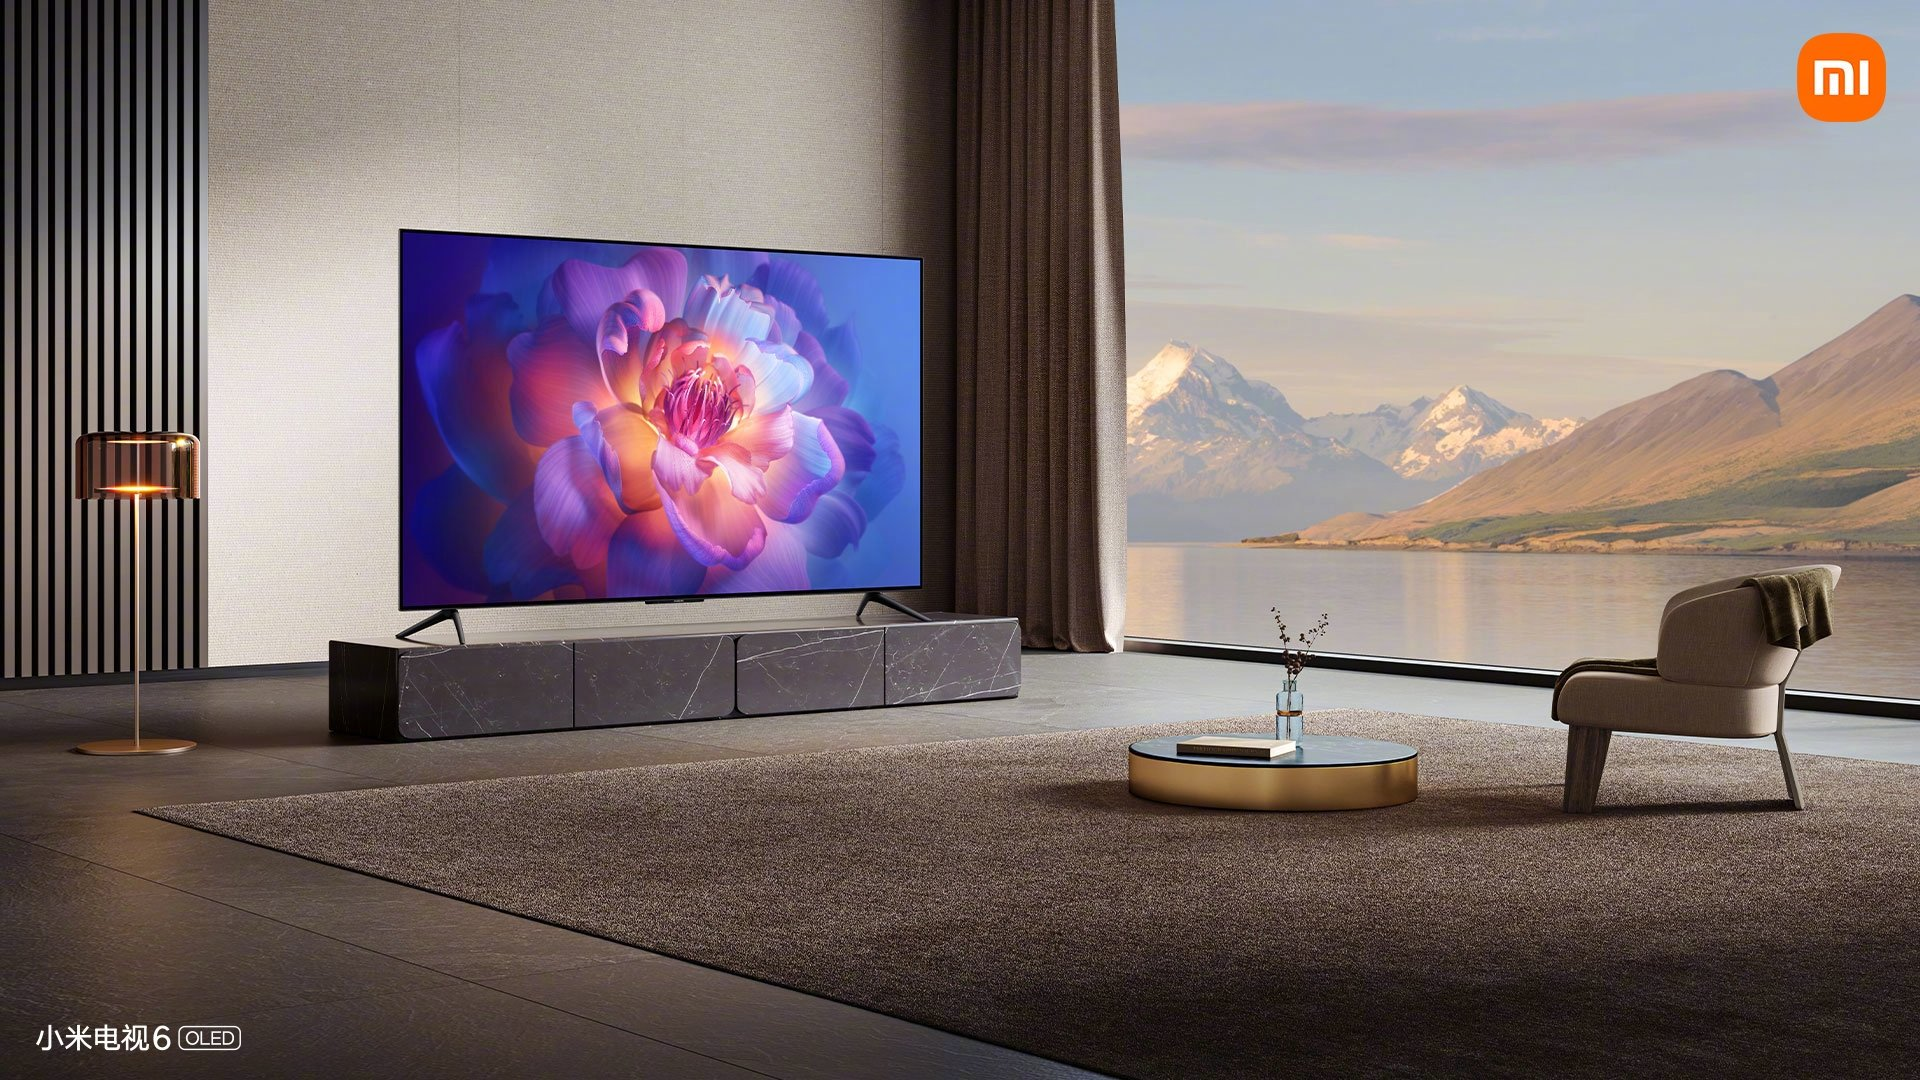 Xiaomi Mi TV 6 OLED Announced With Smaller Bezels and Thinner Frame